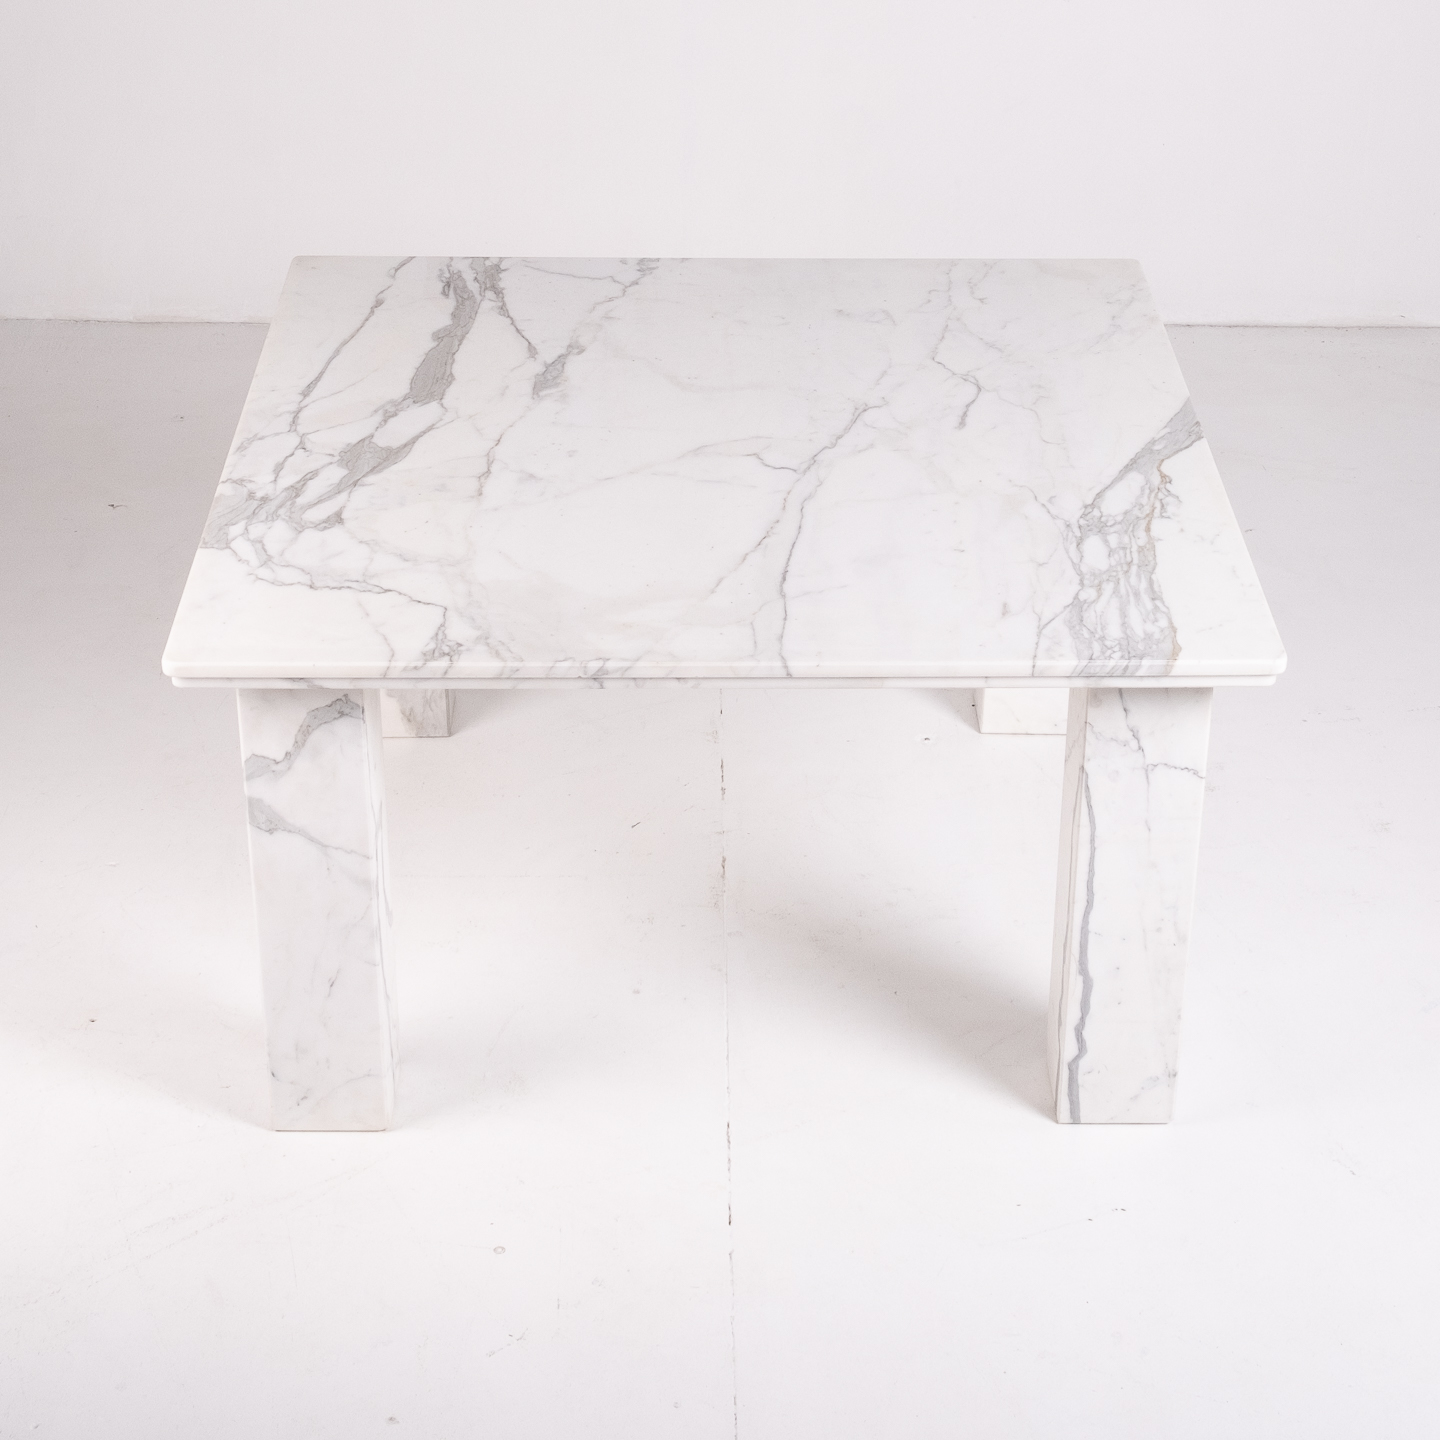 Square Dining Table In White Marble With Solid Square Legs, 1960s, The Netherlands 23